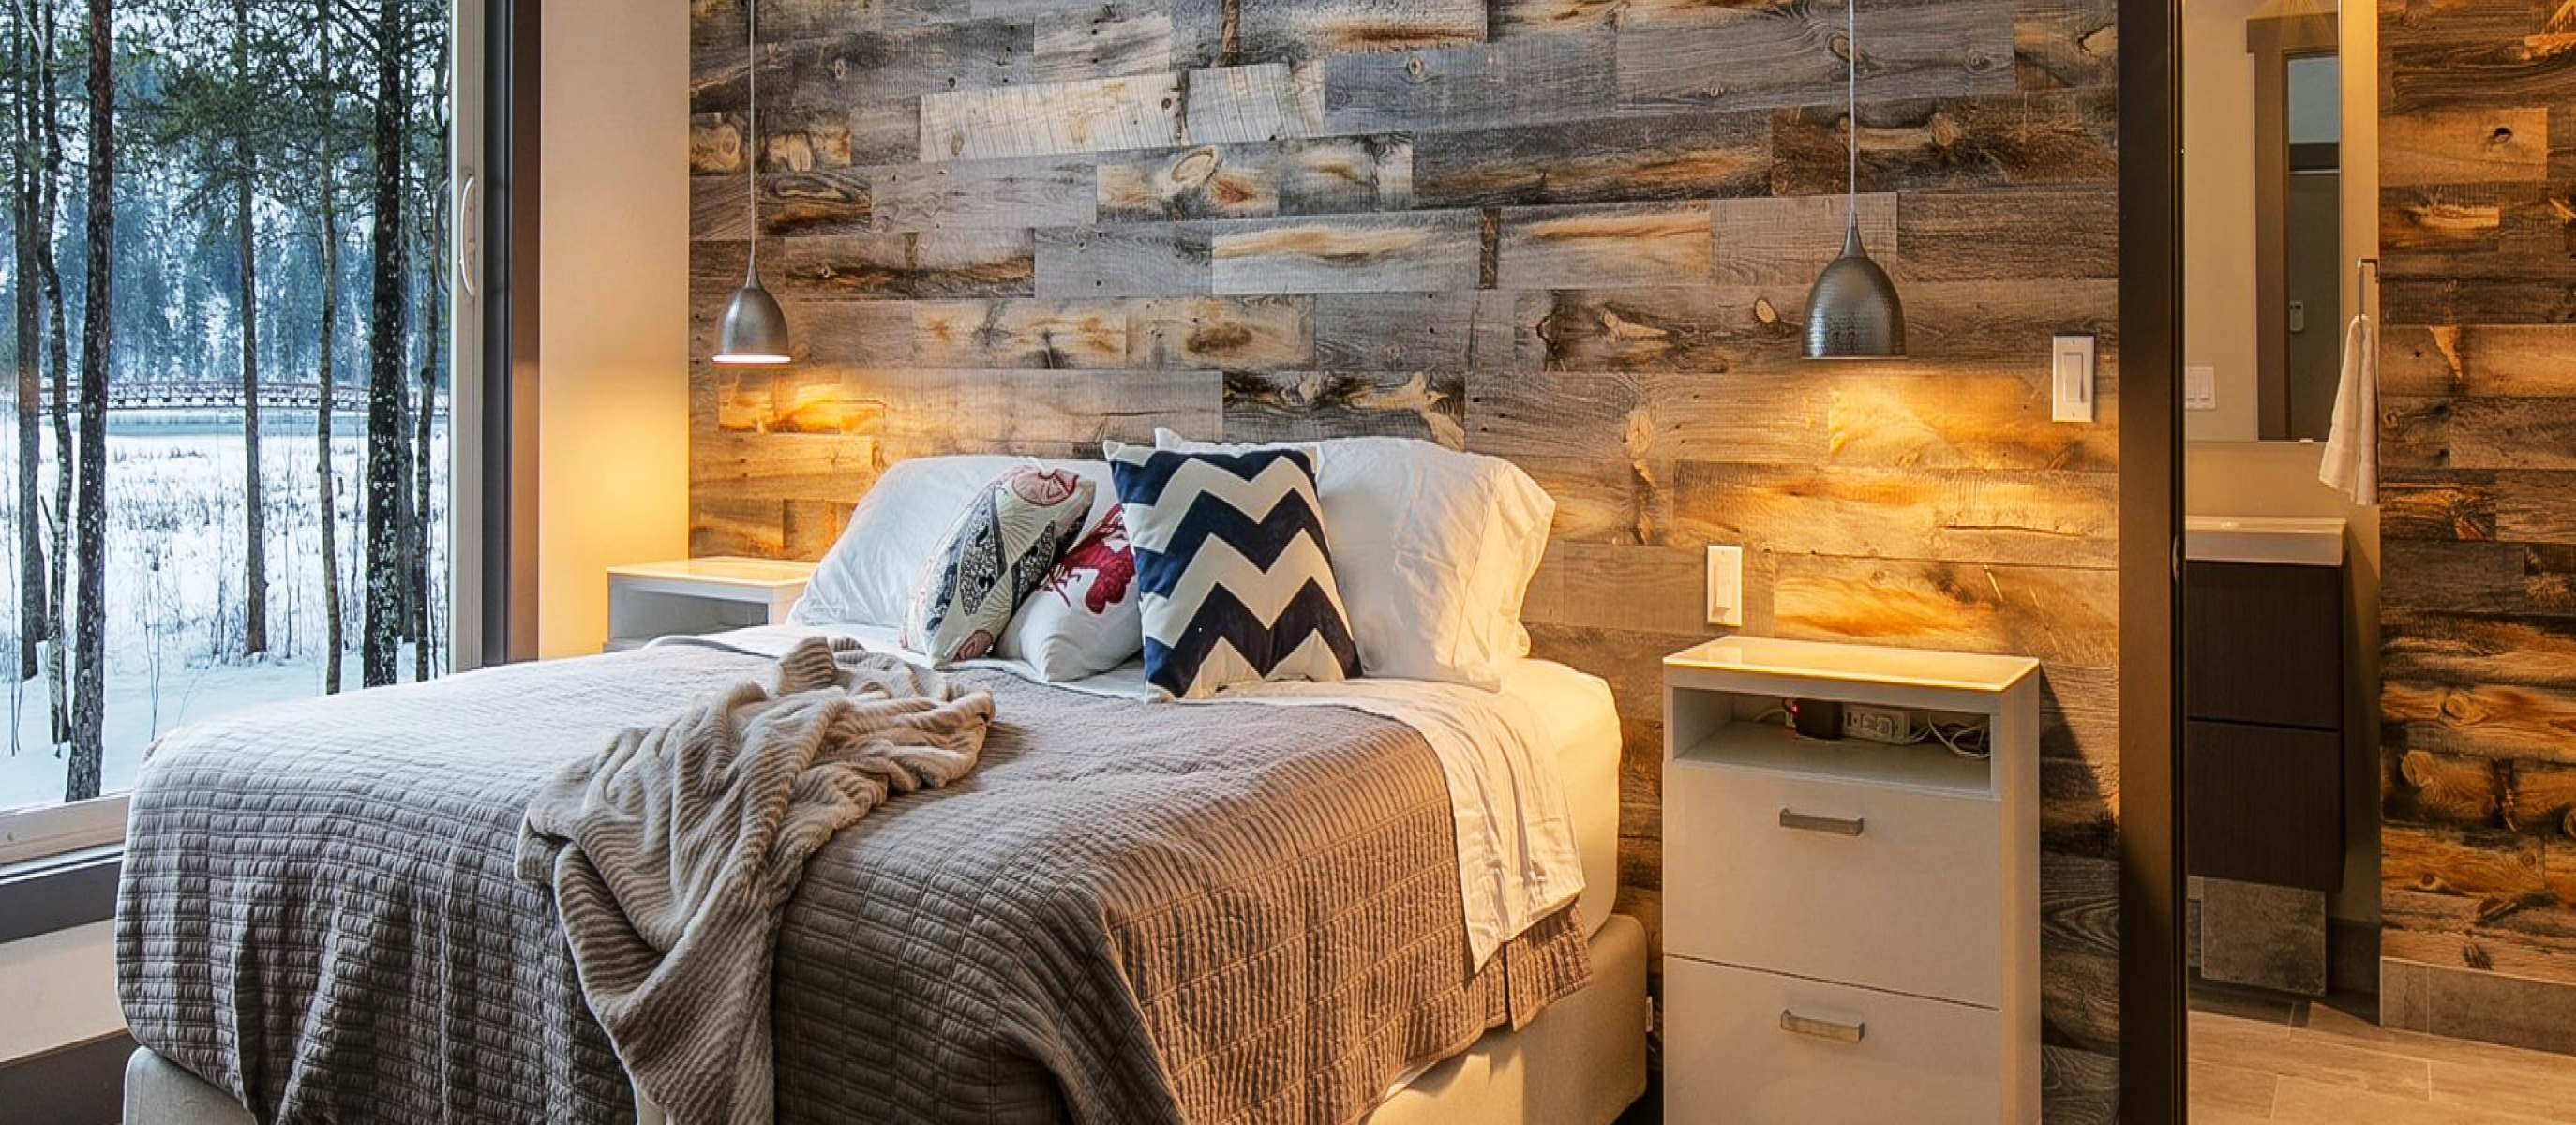 Cabin master bedroom in winter with Stikwood real reclaimed pine peel and stick wood plank accent wall with silver, gray, tan and brown colors.